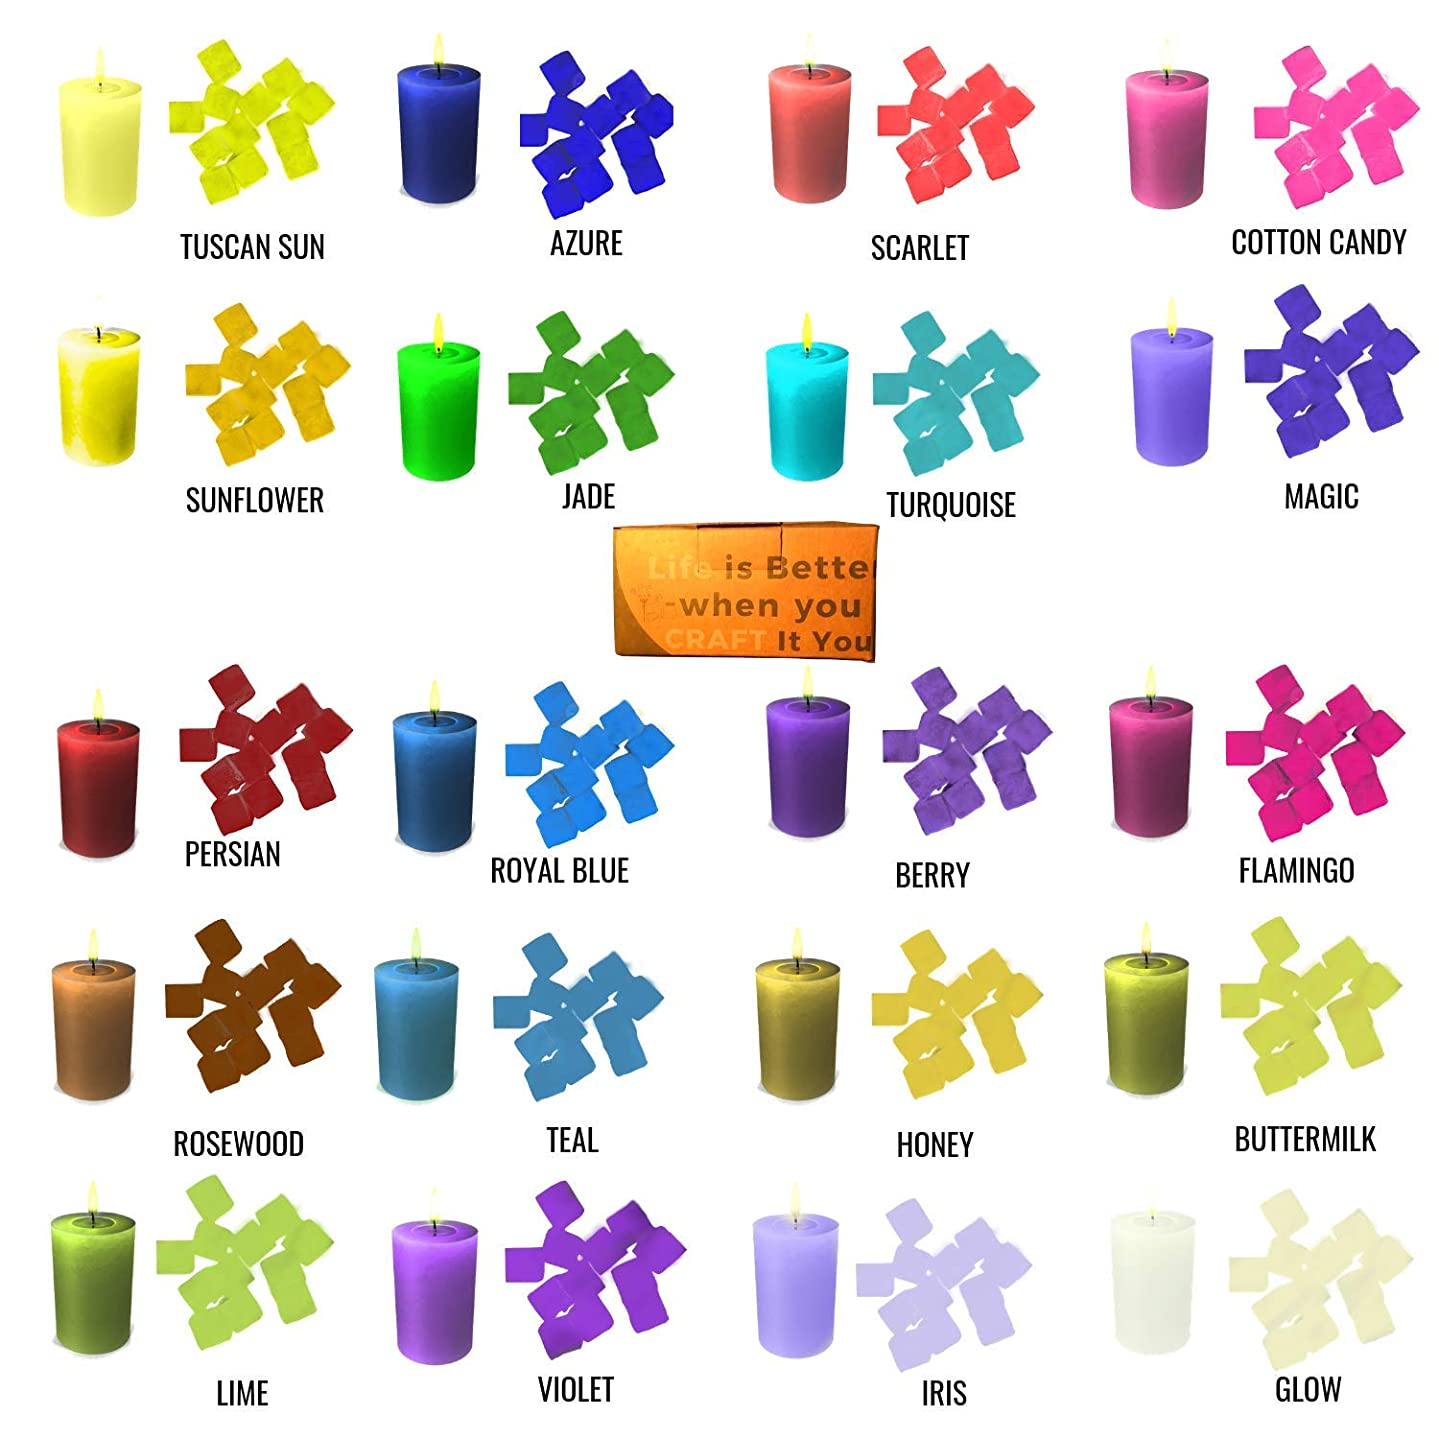 20 Color Wax Dye – DIY Candle Dye - Dye Cubes for Candle Making Supplies Kit - Soy Dye for Candle Molds - for Soy Candle Wax Kit – for Hemp Candle Wicks - for Making Scented Candles pfw841224146